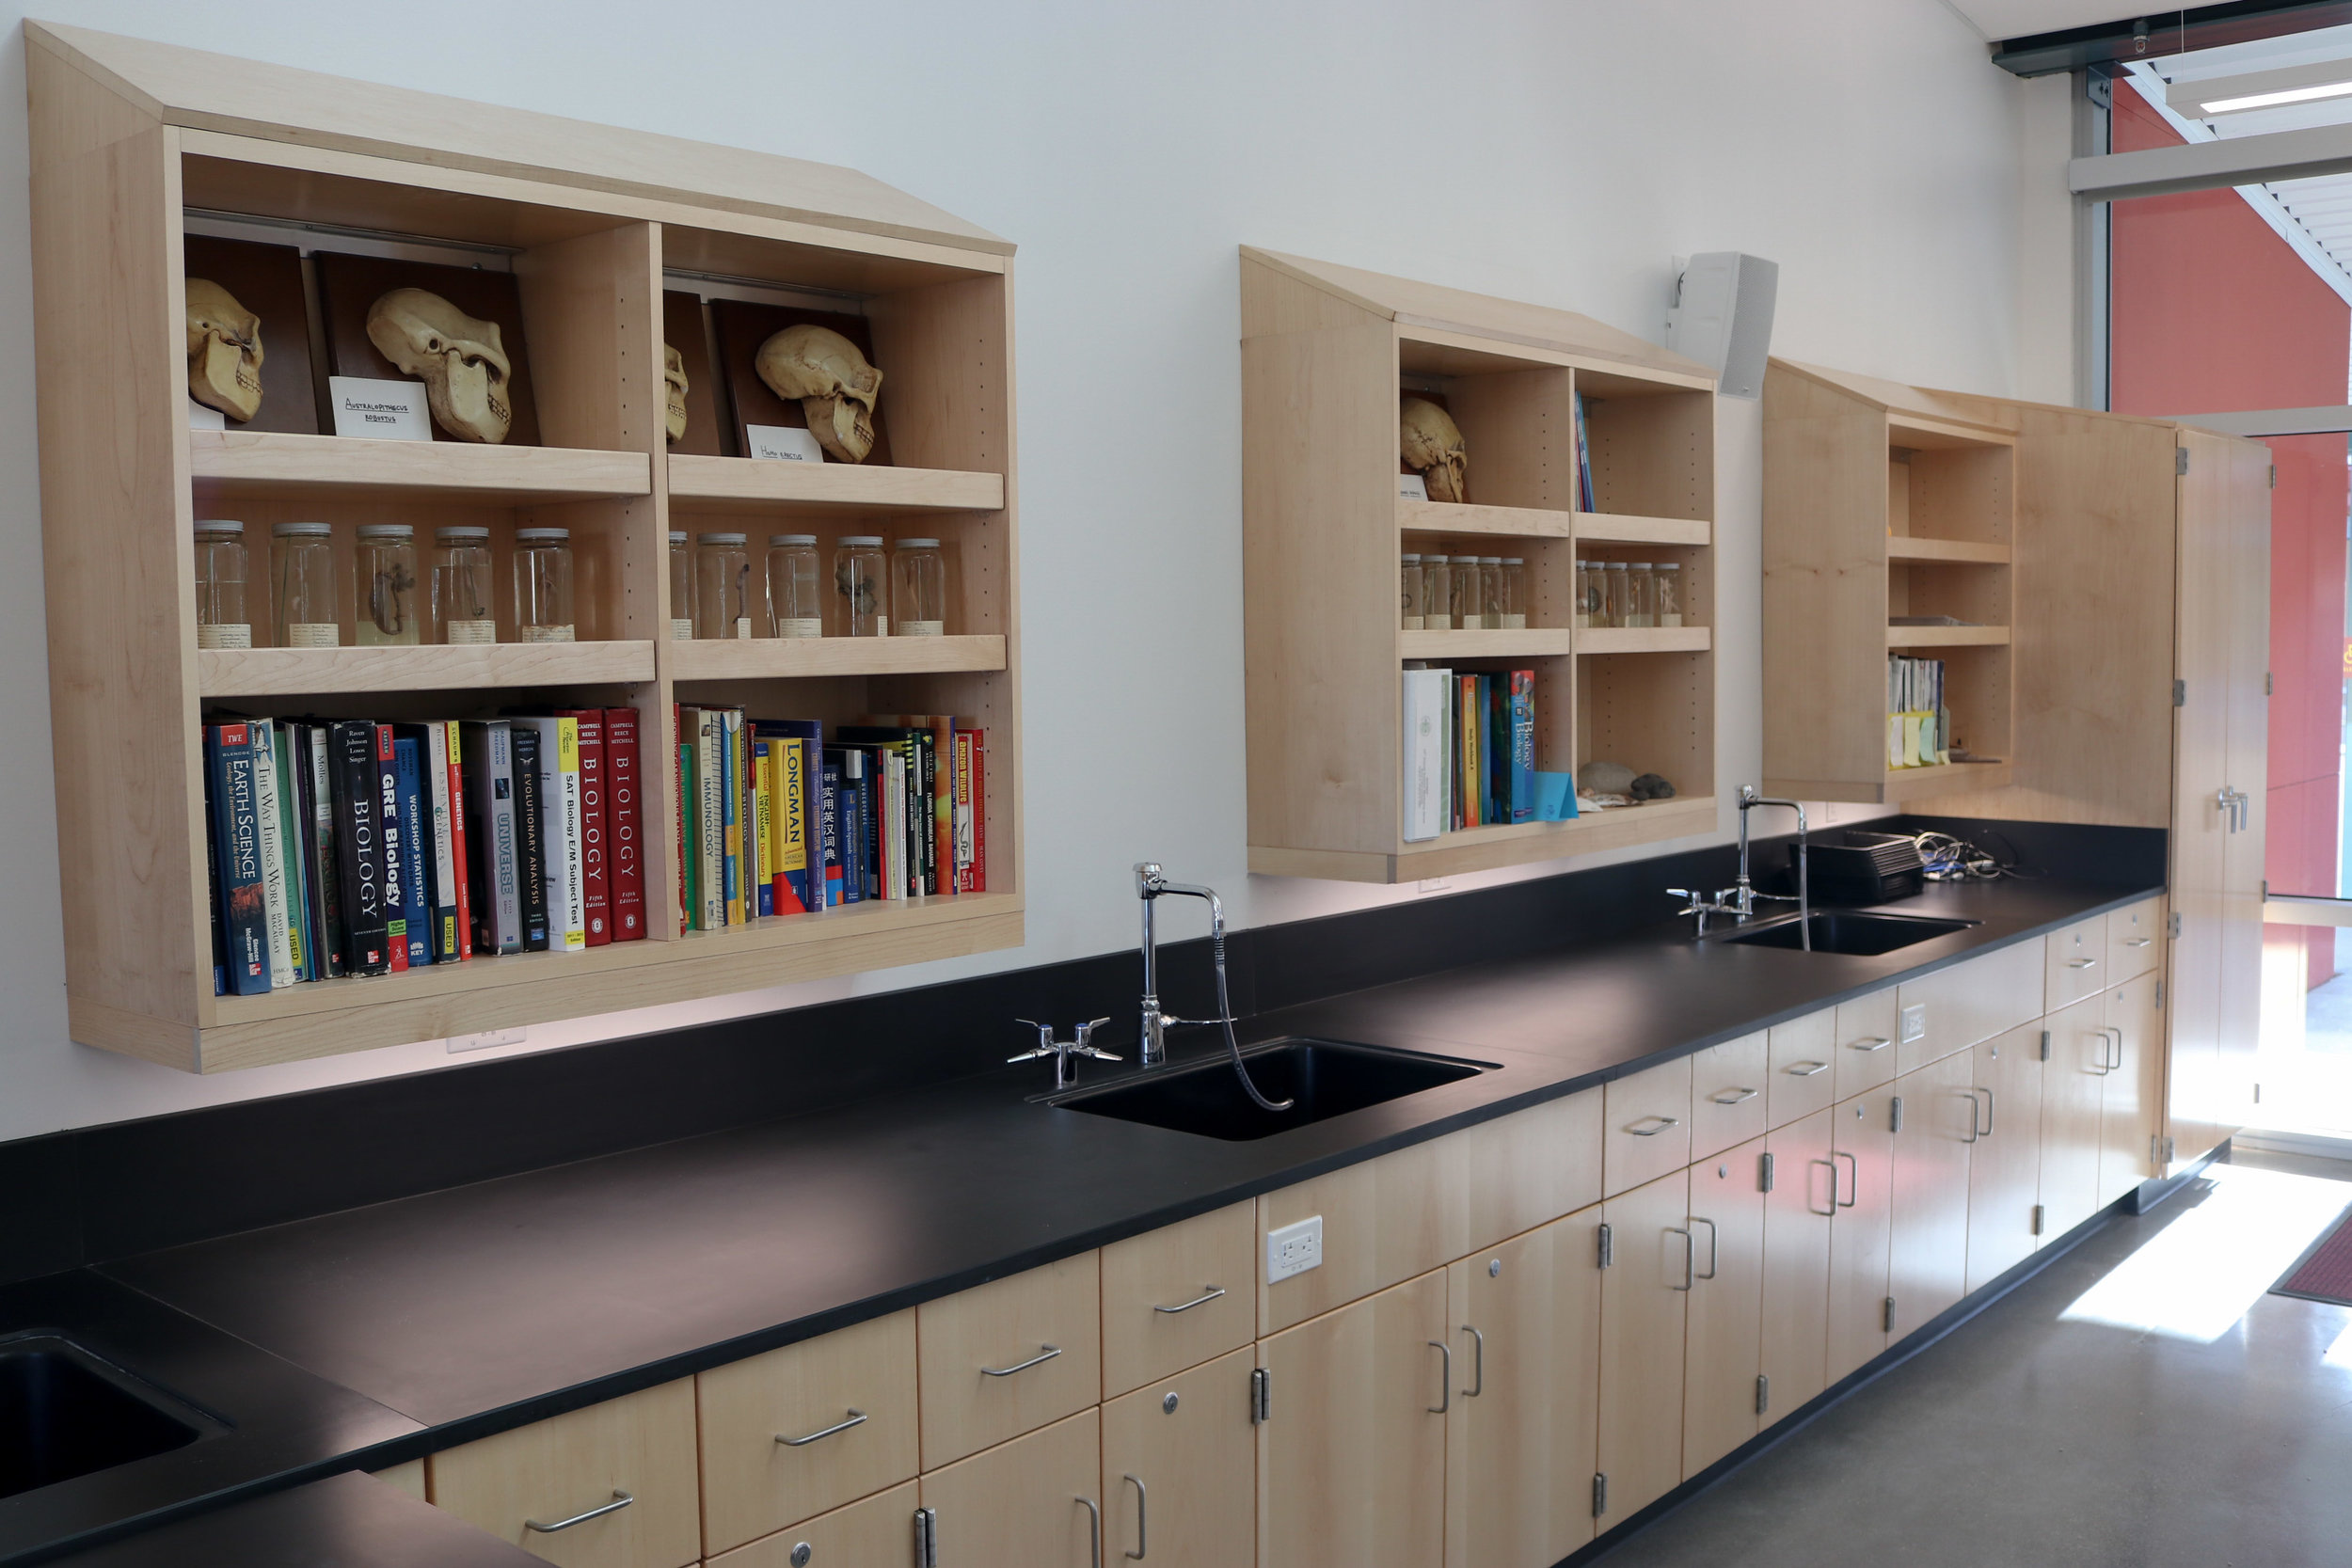 CHEMICAL RESISTANT MAPLE WOOD CASEWORK AND EPOXY COUNTERTOPS